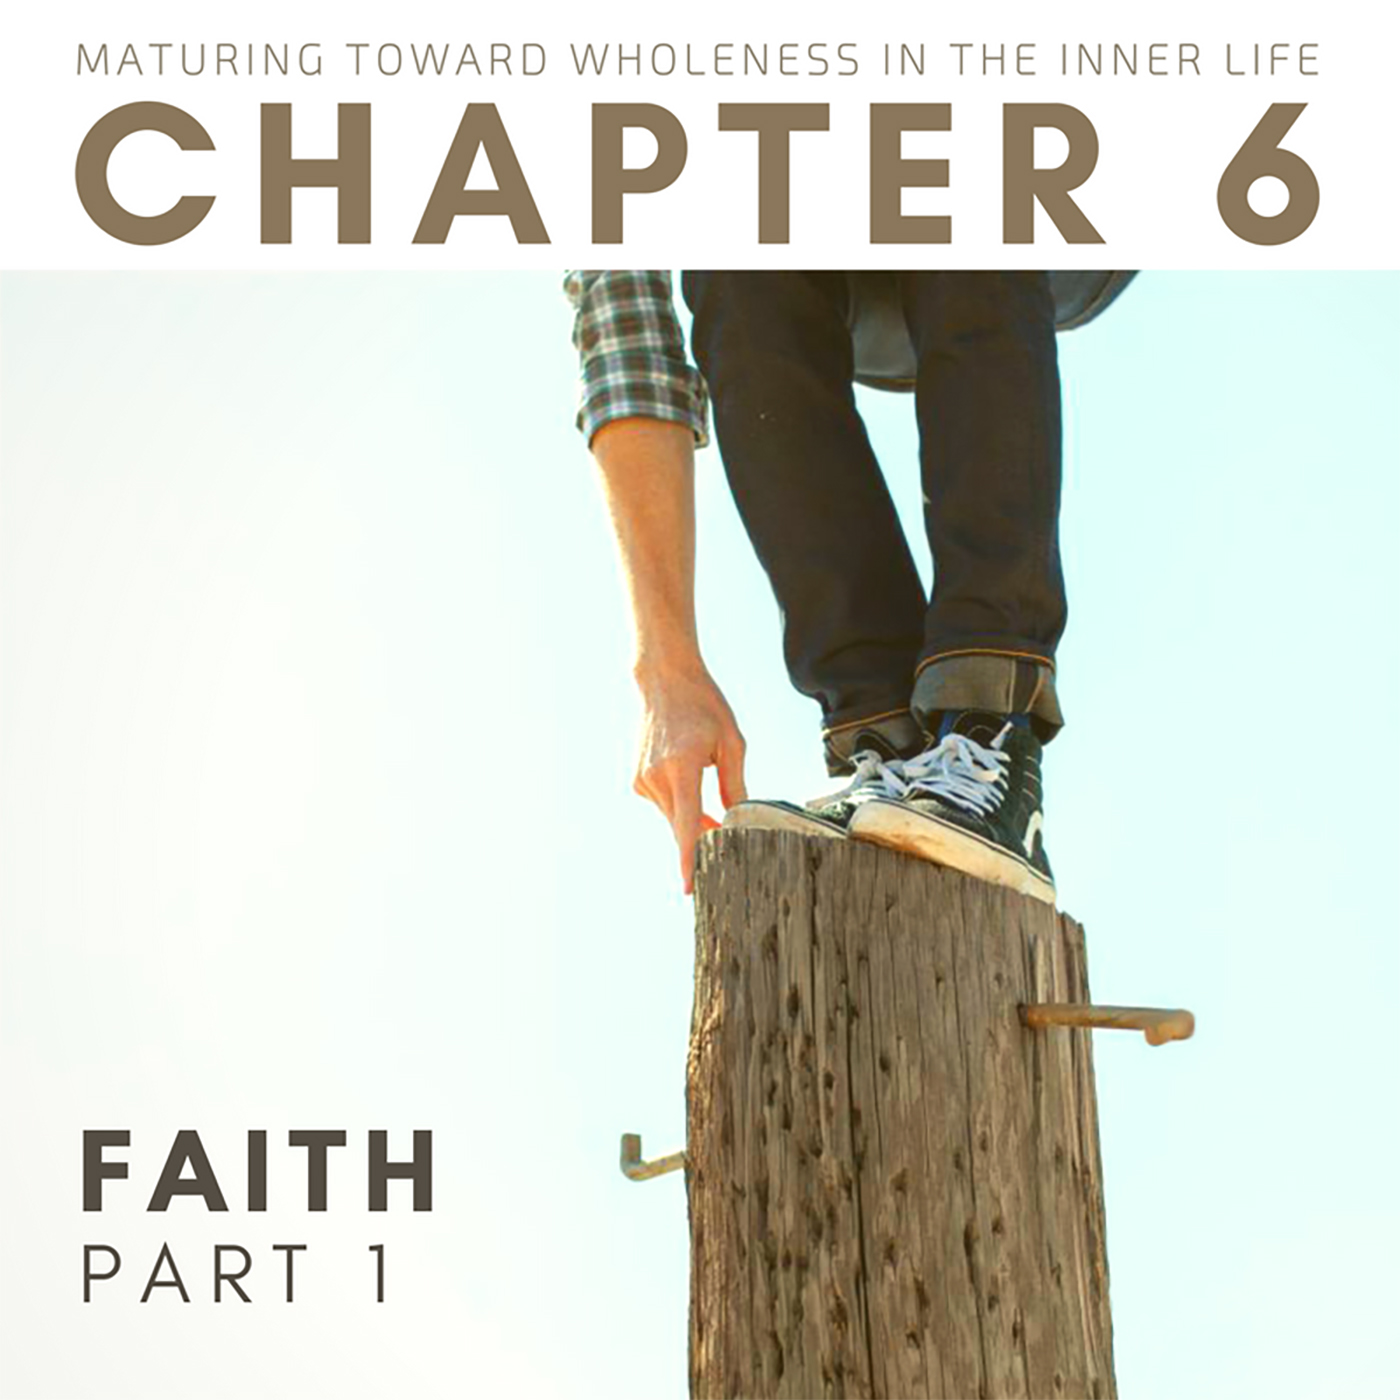 Faith (1 of 2)